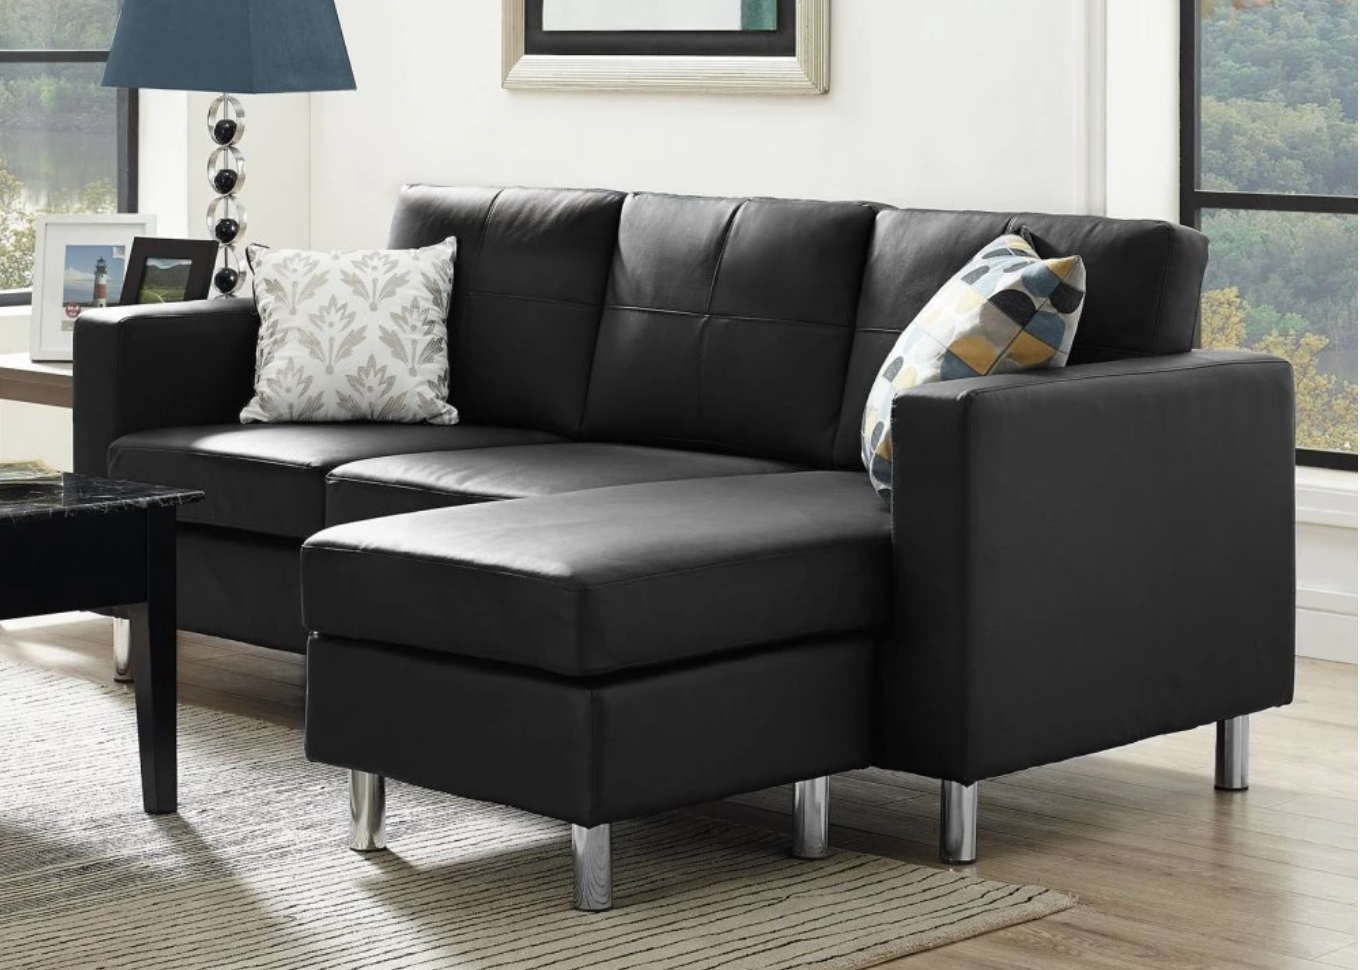 Most Current 75 Modern Sectional Sofas For Small Spaces (2018) Regarding Canada Sectional Sofas For Small Spaces (View 12 of 15)